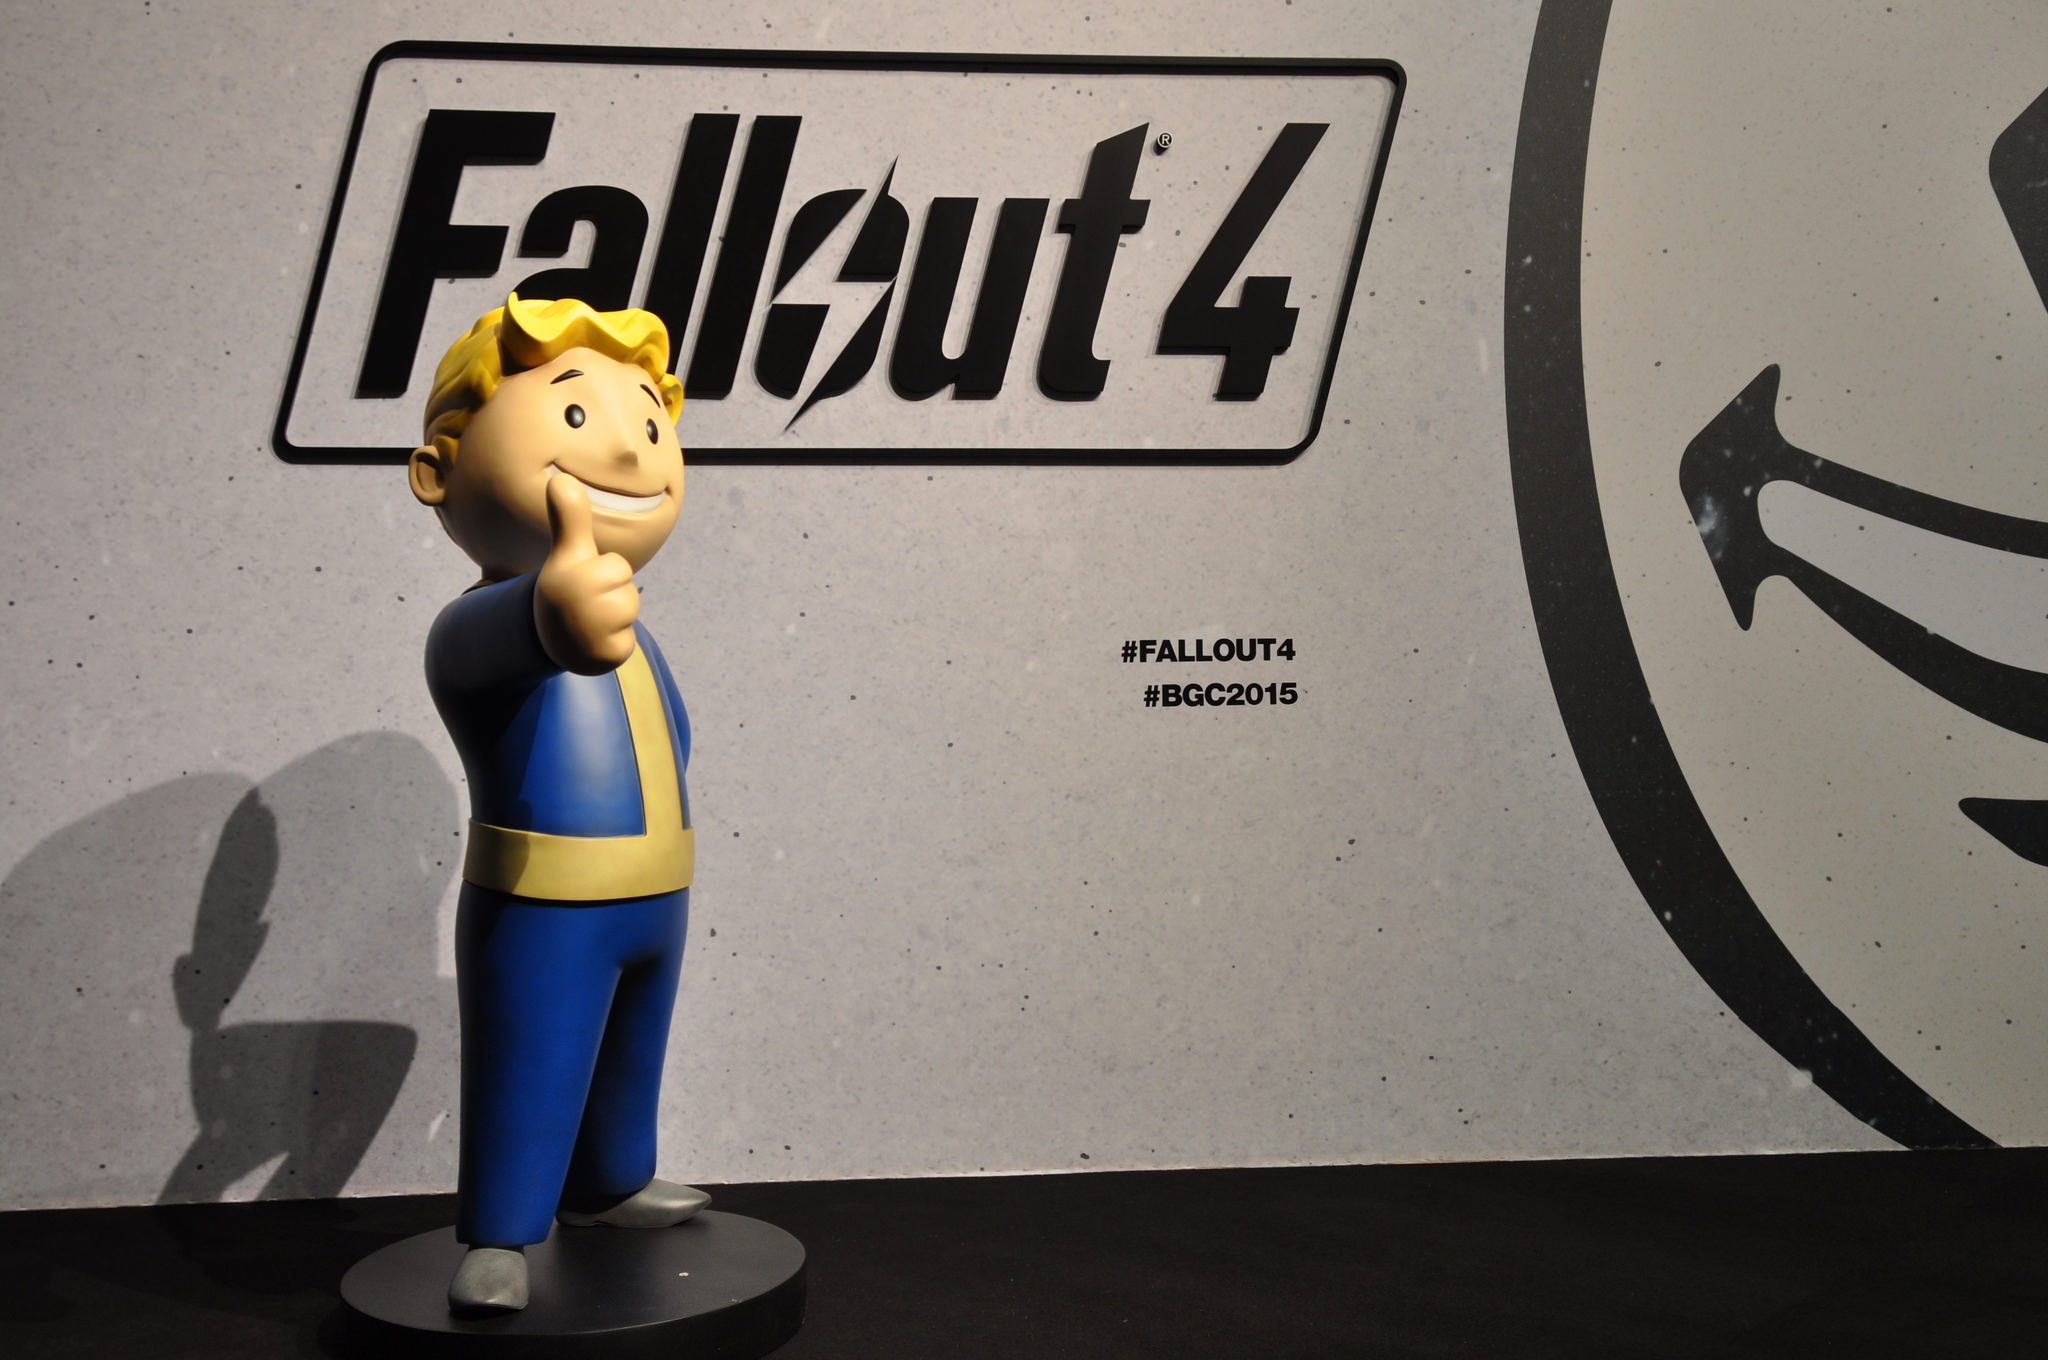 Bitcoin stolen via malware-infected pirated copy of Fallout 4